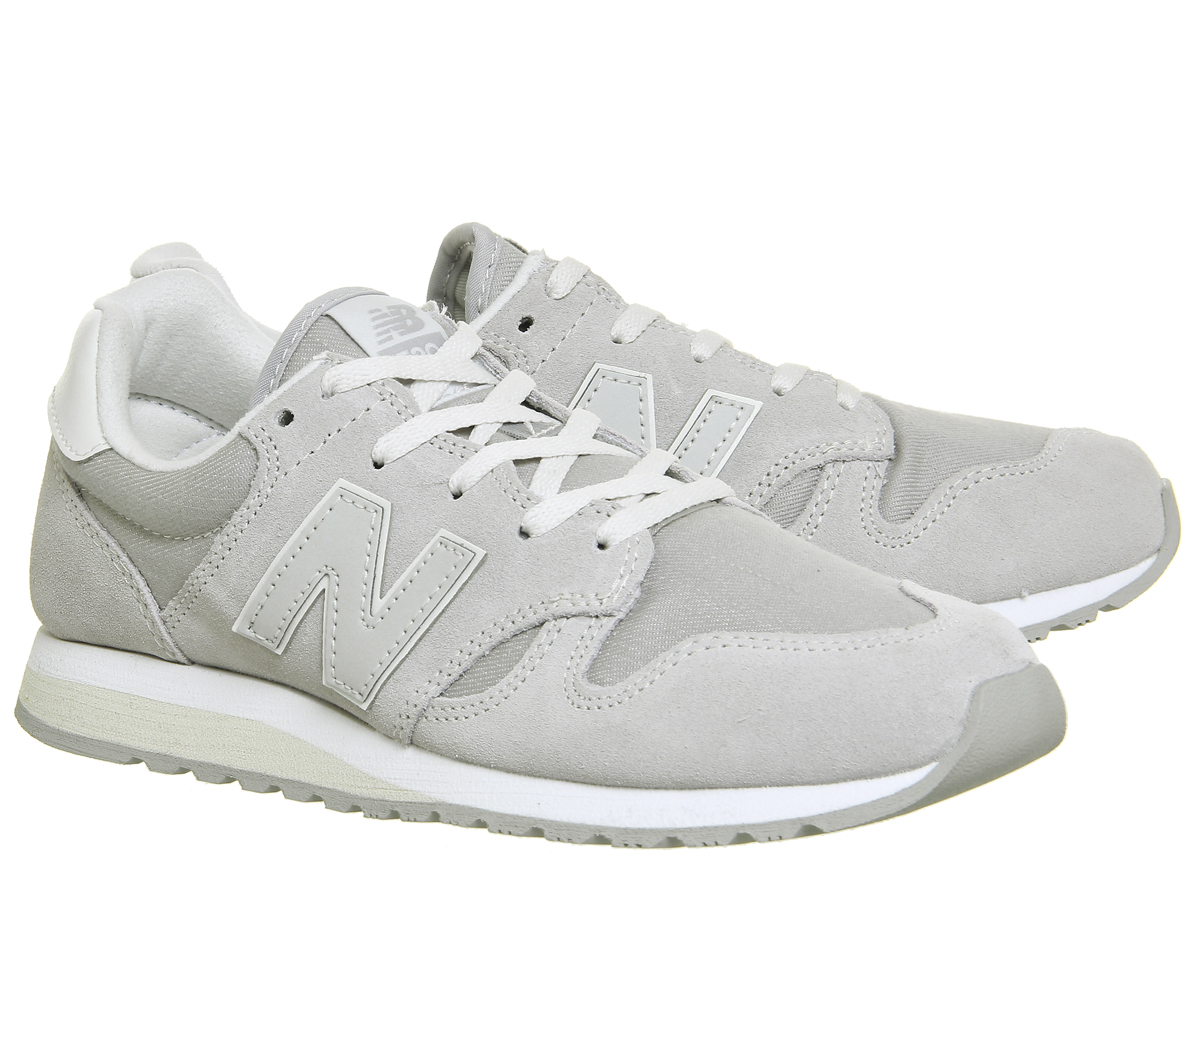 Femme New Balance 520 Trainers OVERCAST Trainers Trainers Trainers chaussures 389e29